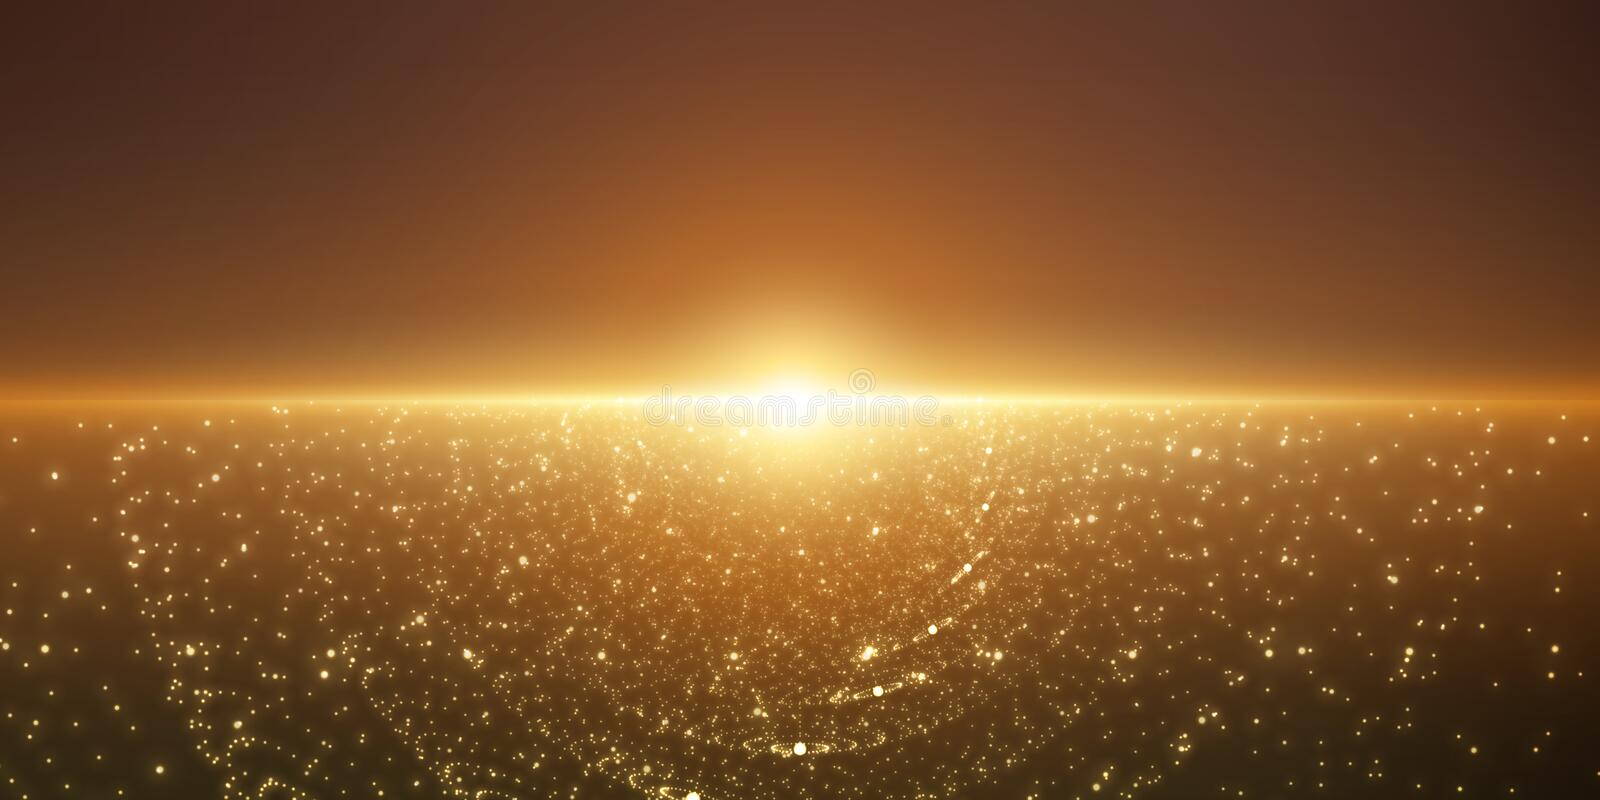 Vector infinite space background. Matrix of glowing stars with illusion of depth and perspective. Abstract cyber fiery sunrise. Abstract futuristic universe on vector illustration